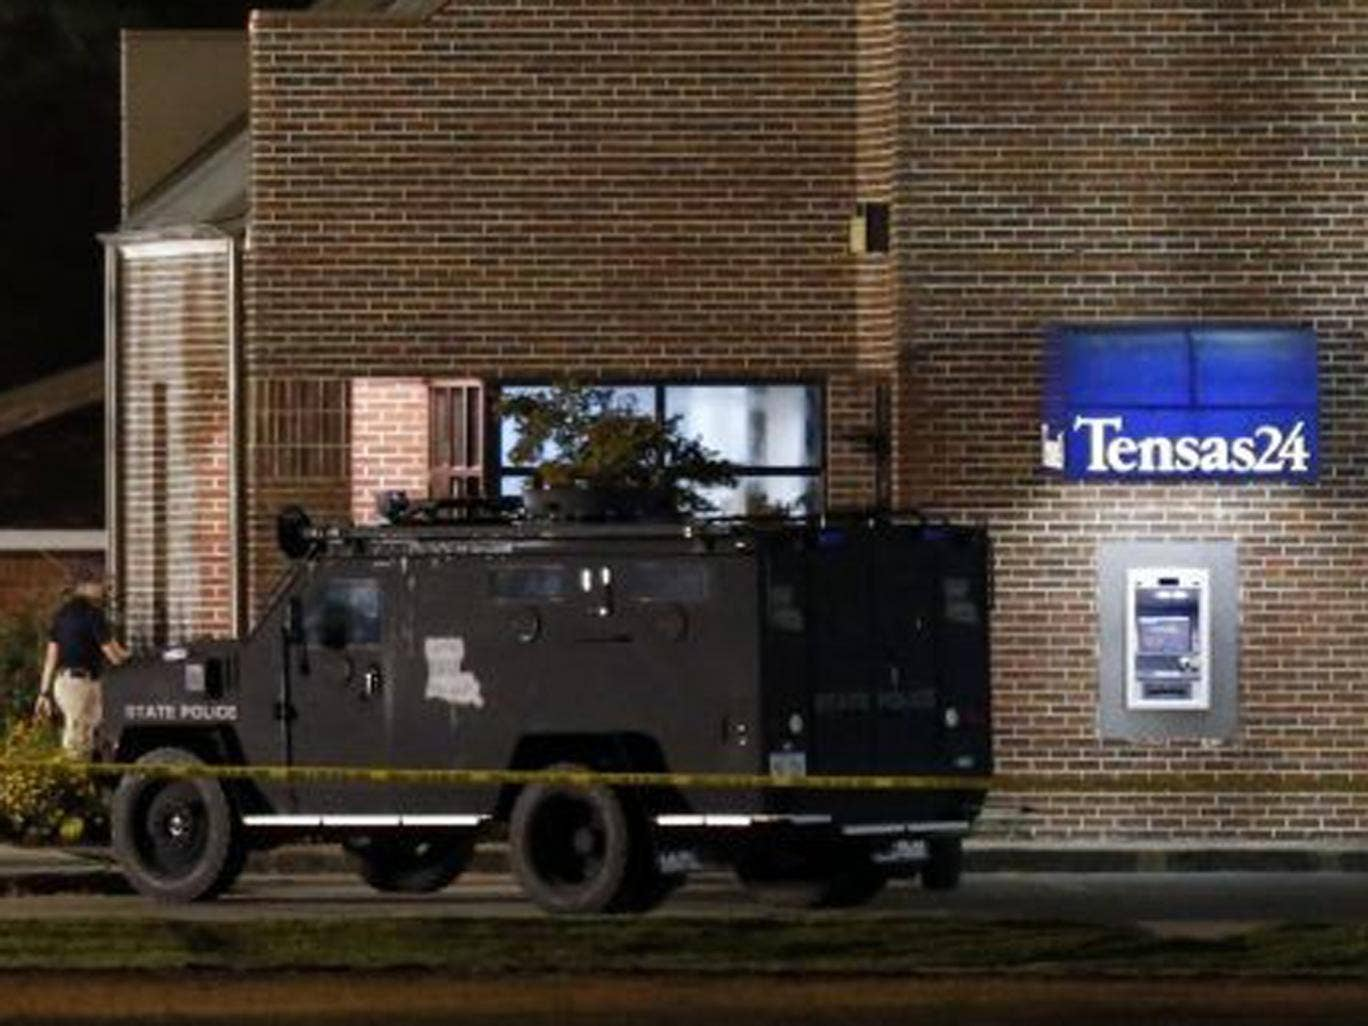 A SWAT vehicle outside the Tensas State Bank in St. Joseph as investigators work throughout the early morning hours